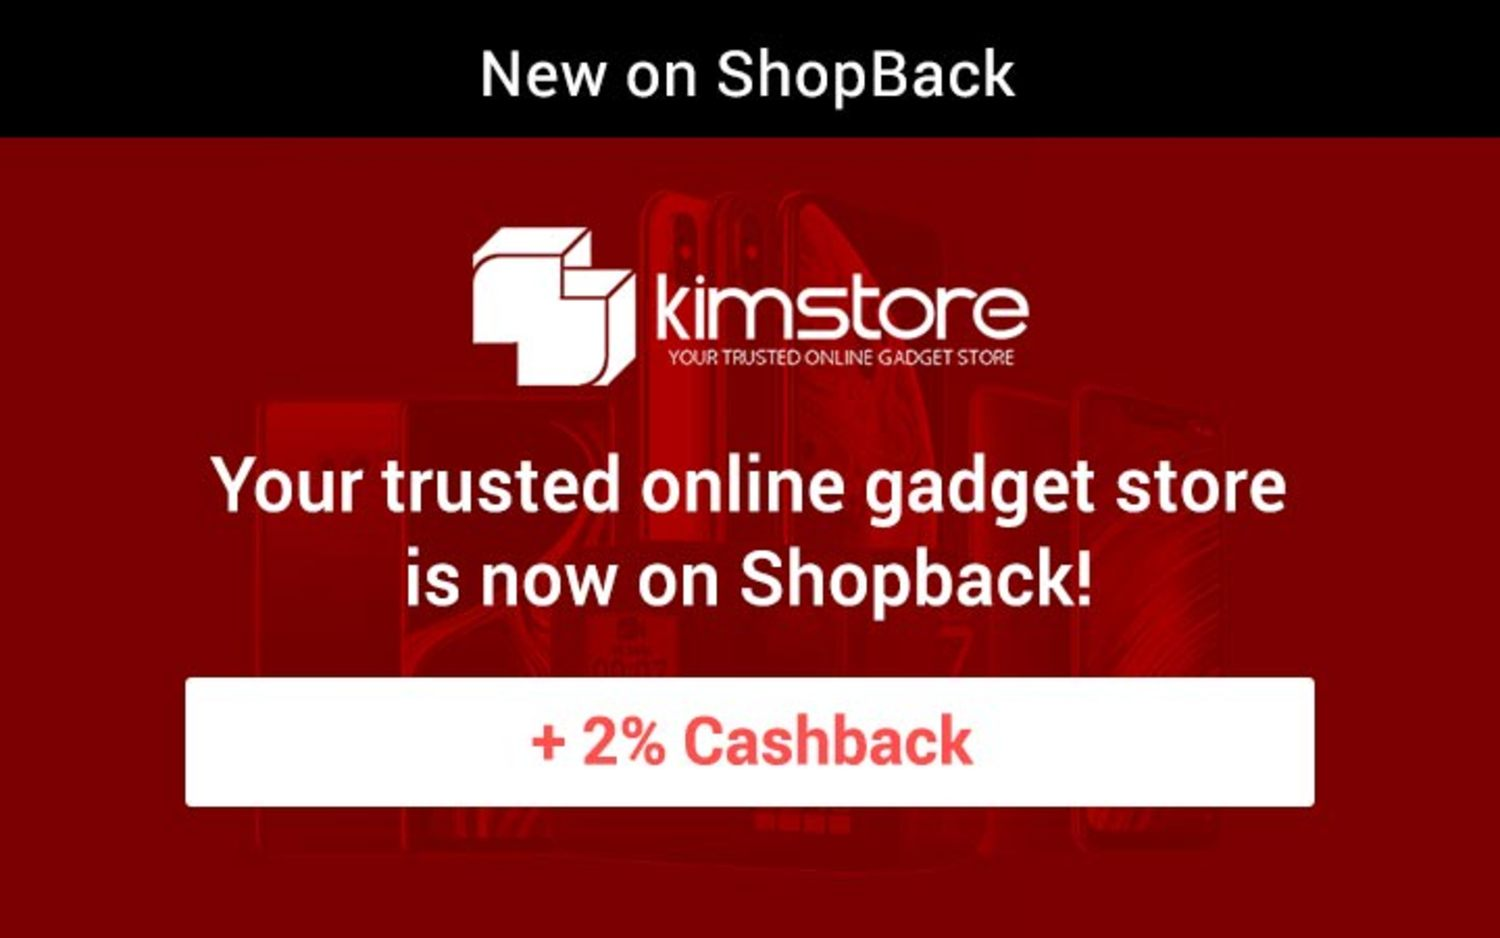 KimStore: Your trusted online gadget store is now on Shopback!